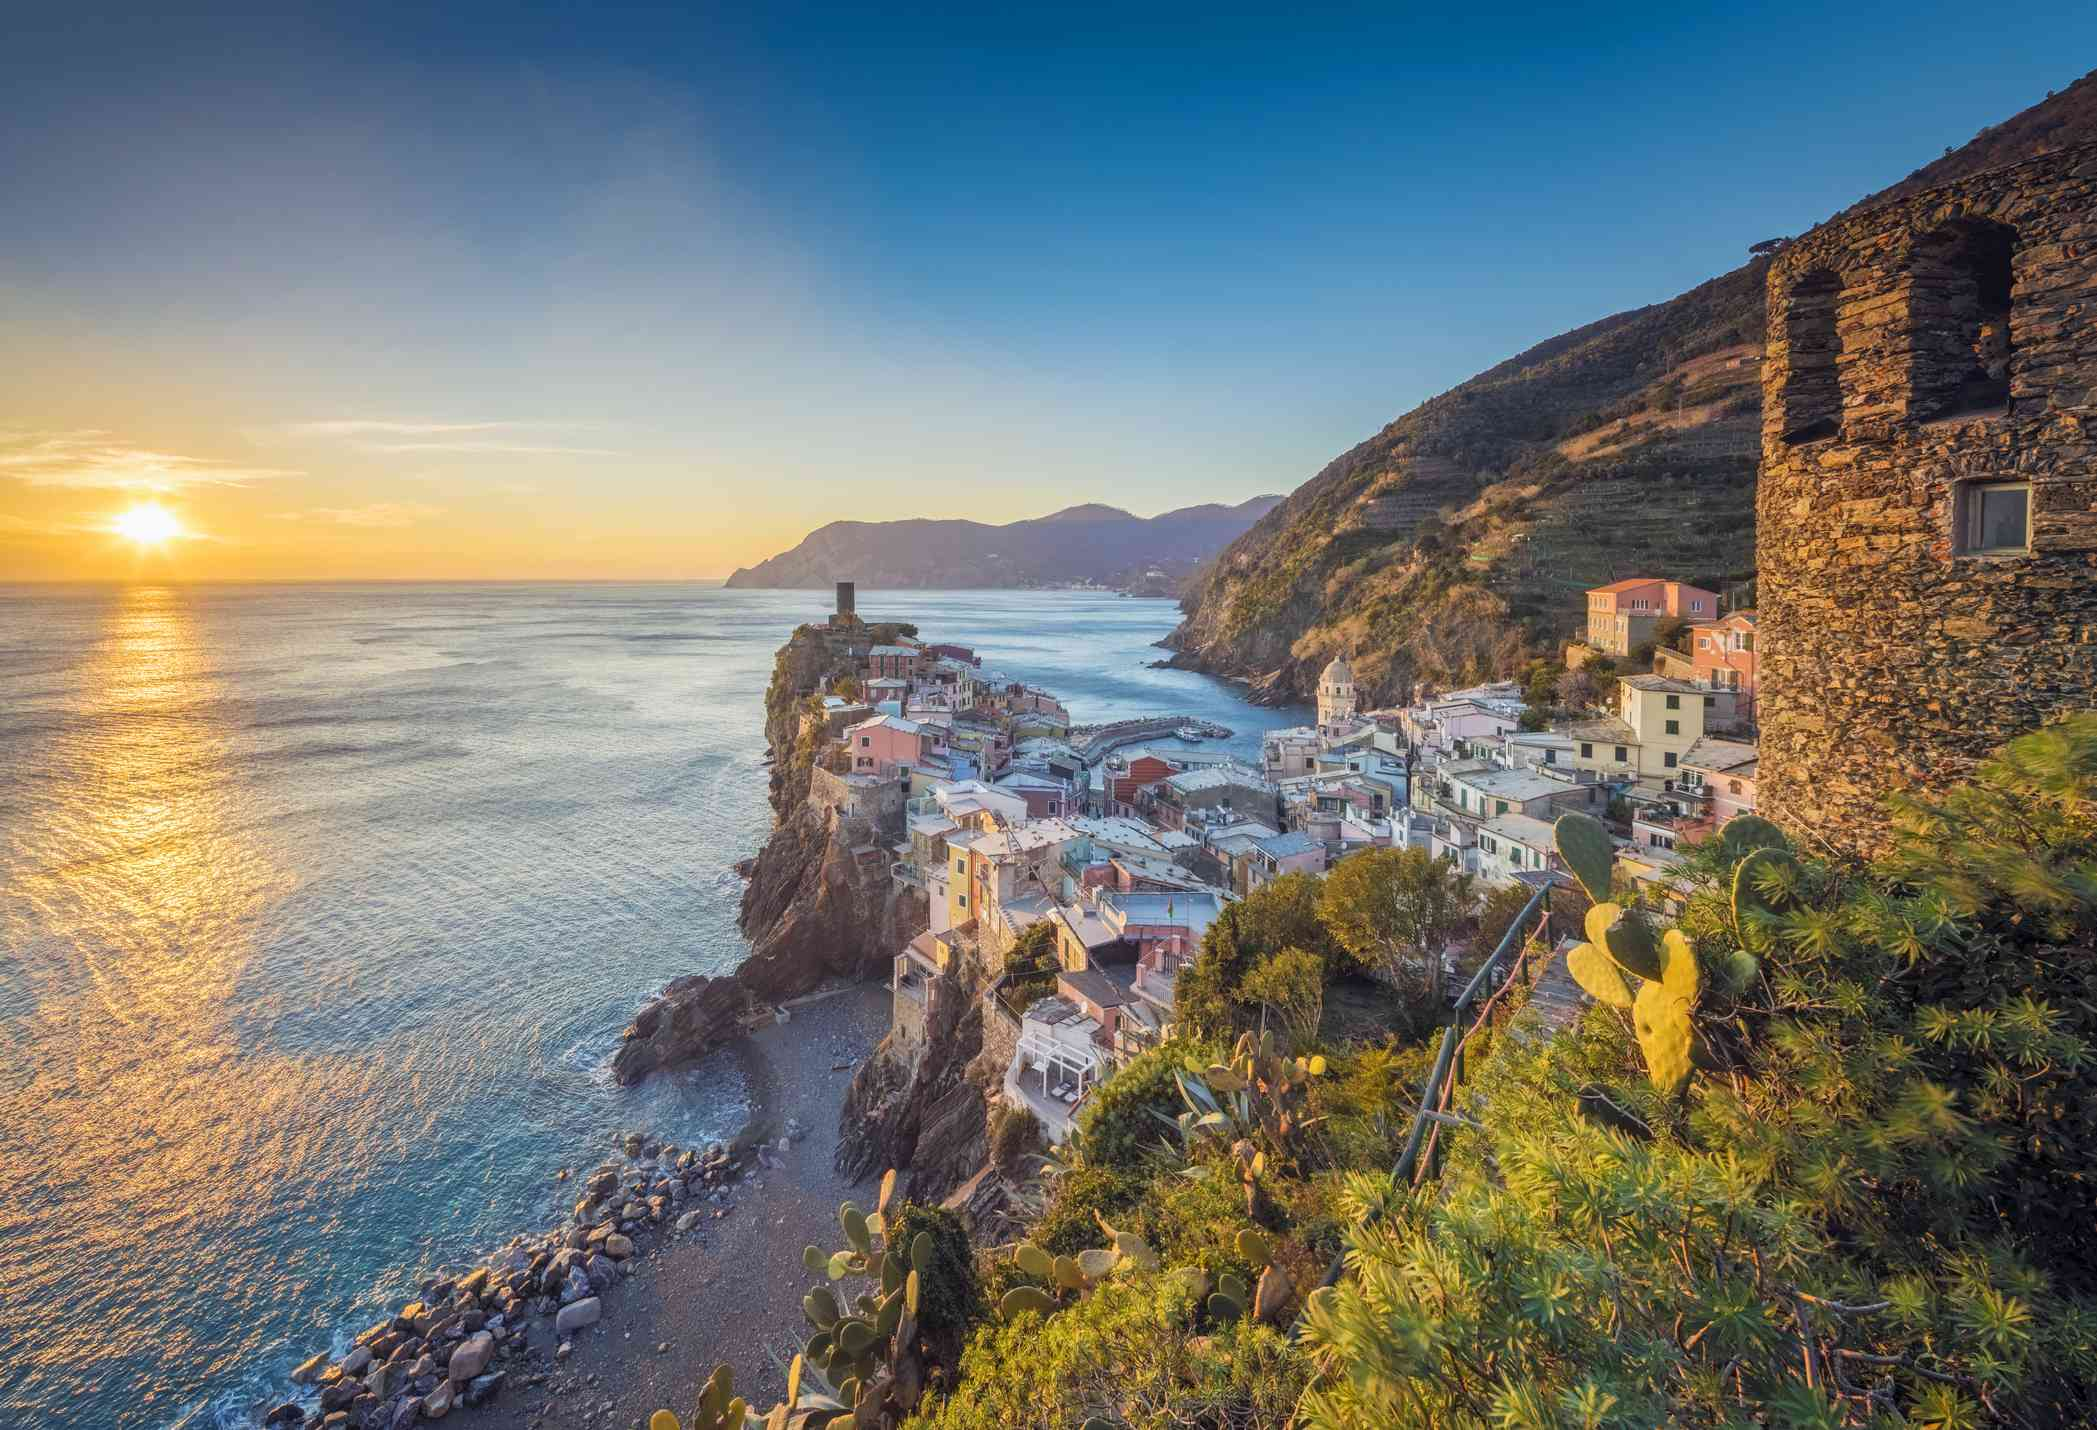 Sunset over the sea at Vernazza